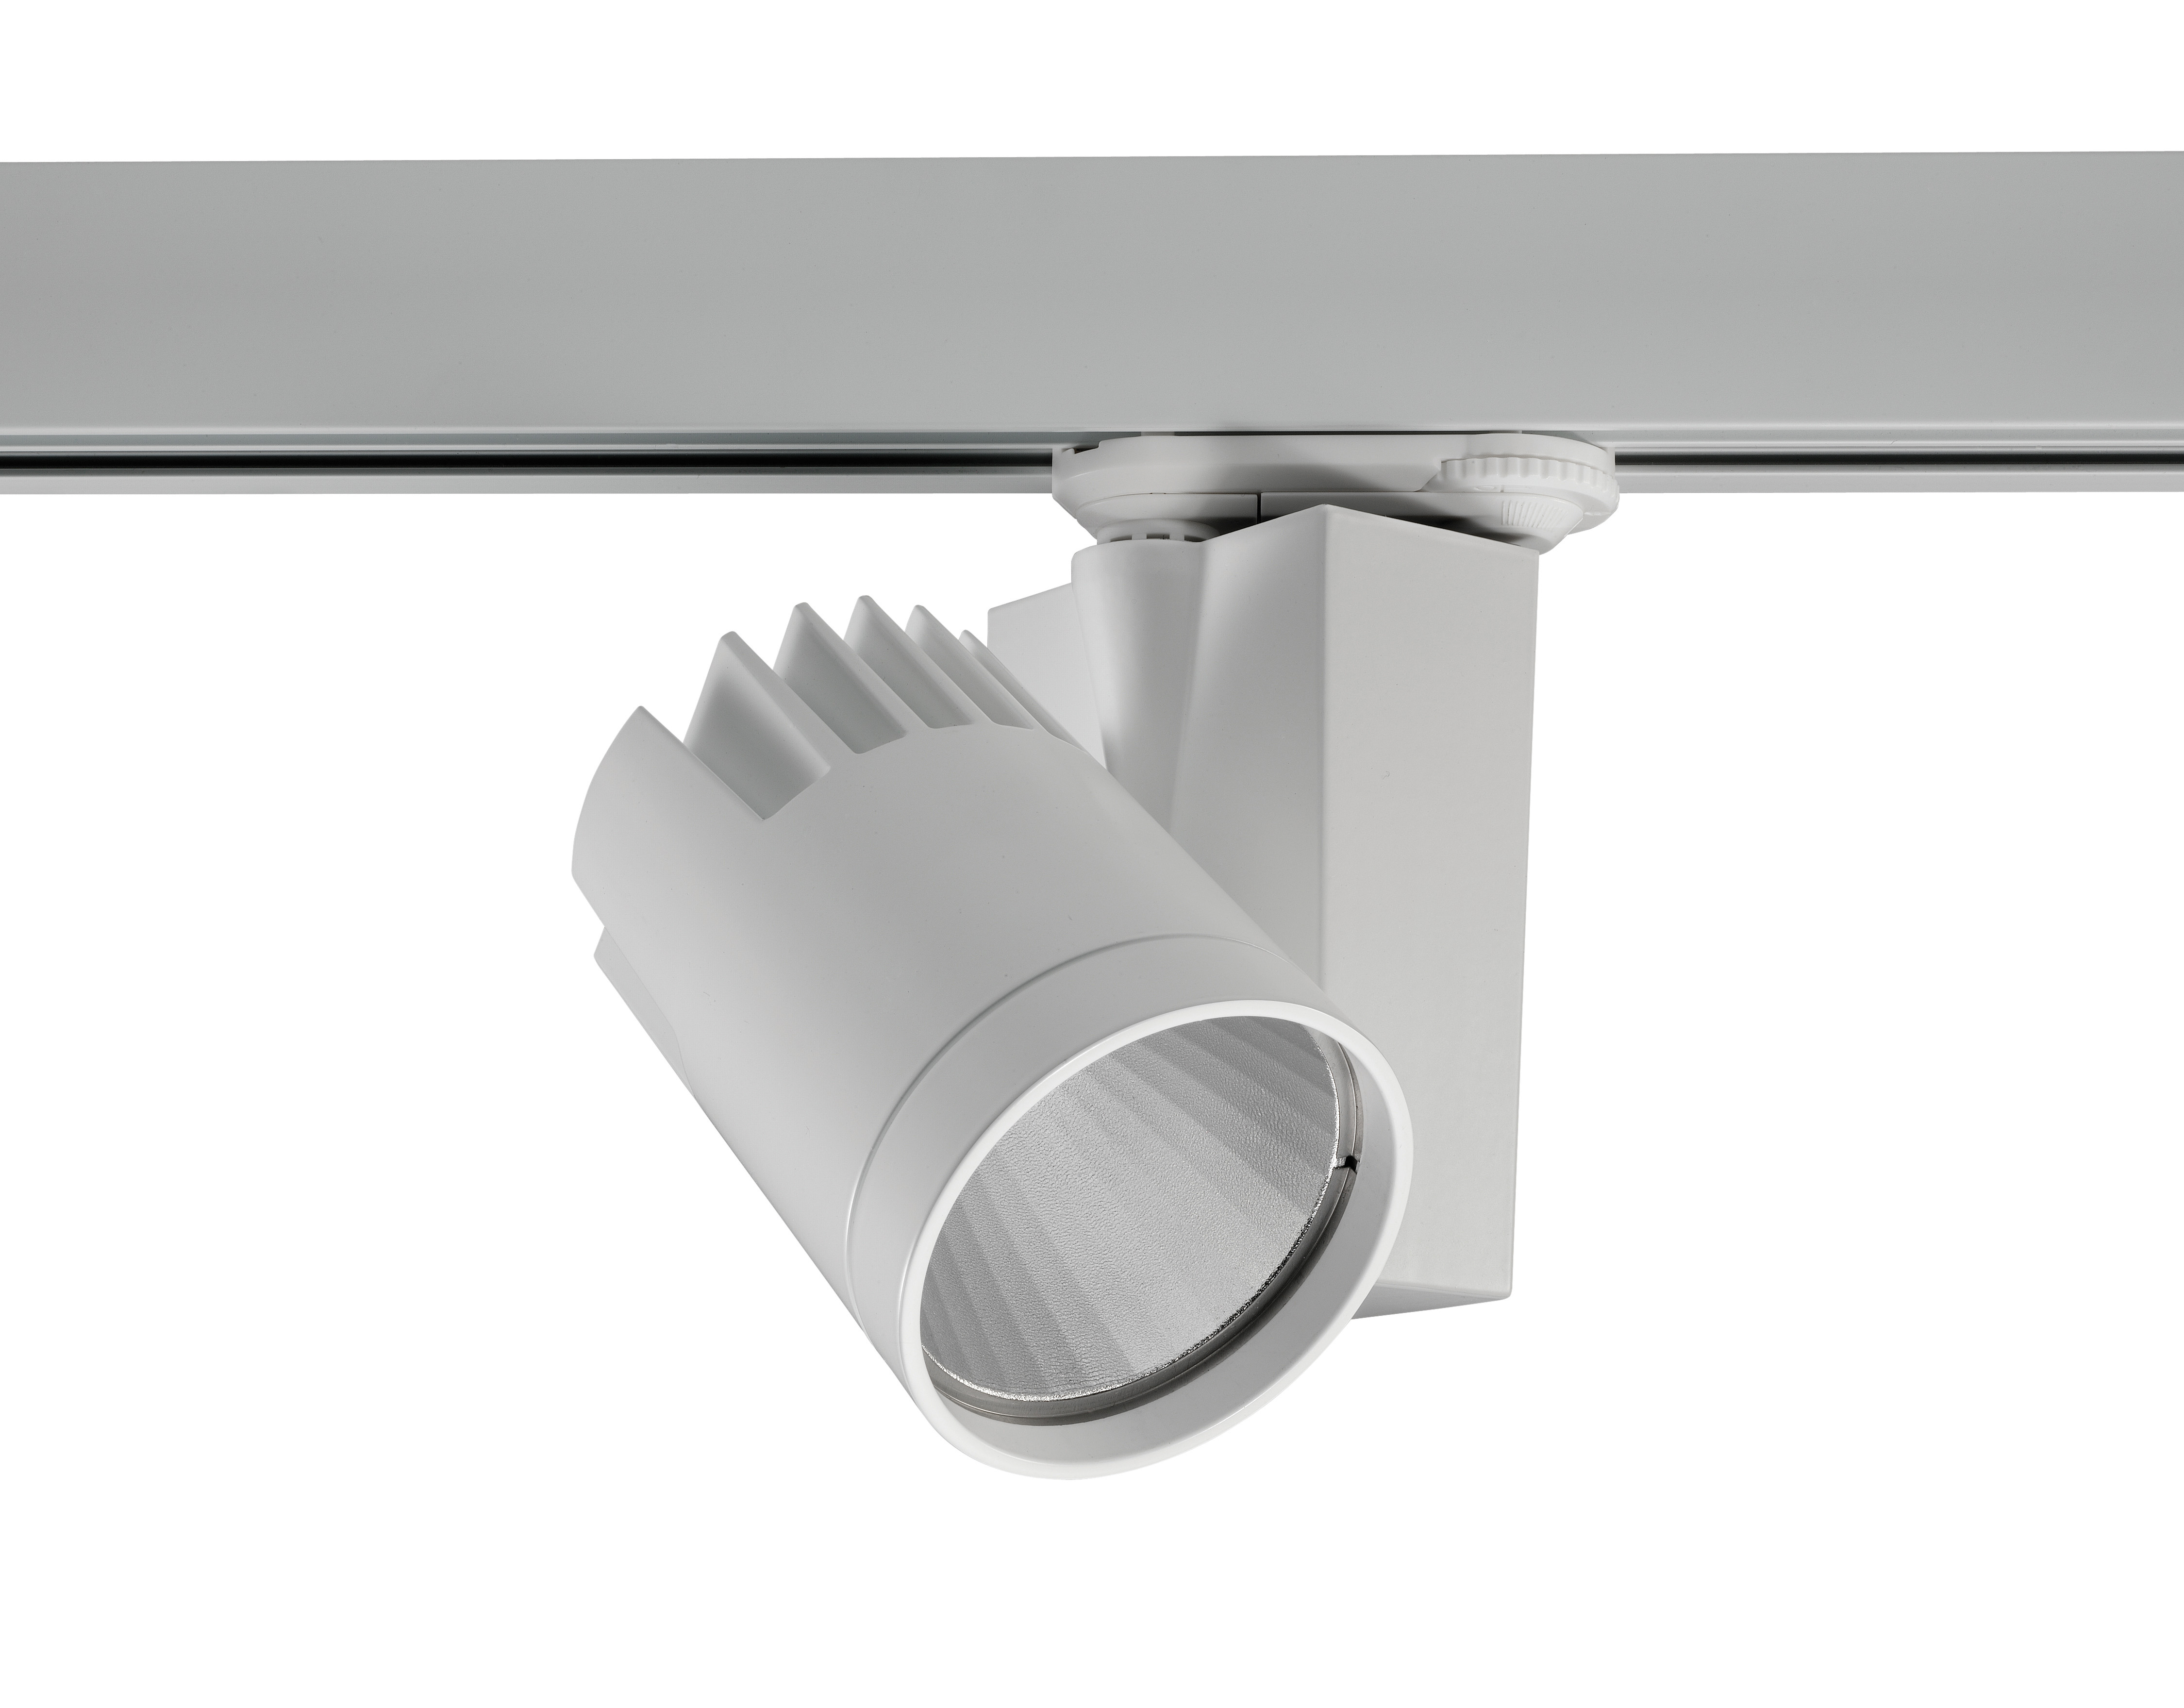 track lighting solutions. Product Image For 2048782 Track Lighting Solutions R